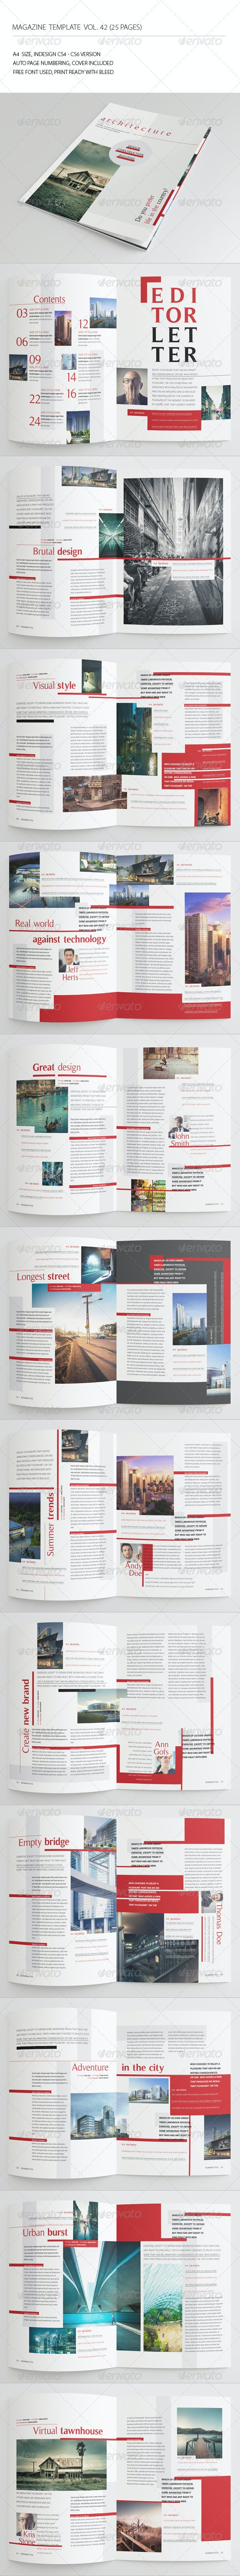 25 Pages Architecture Magazine Vol42 - Magazines Print Templates